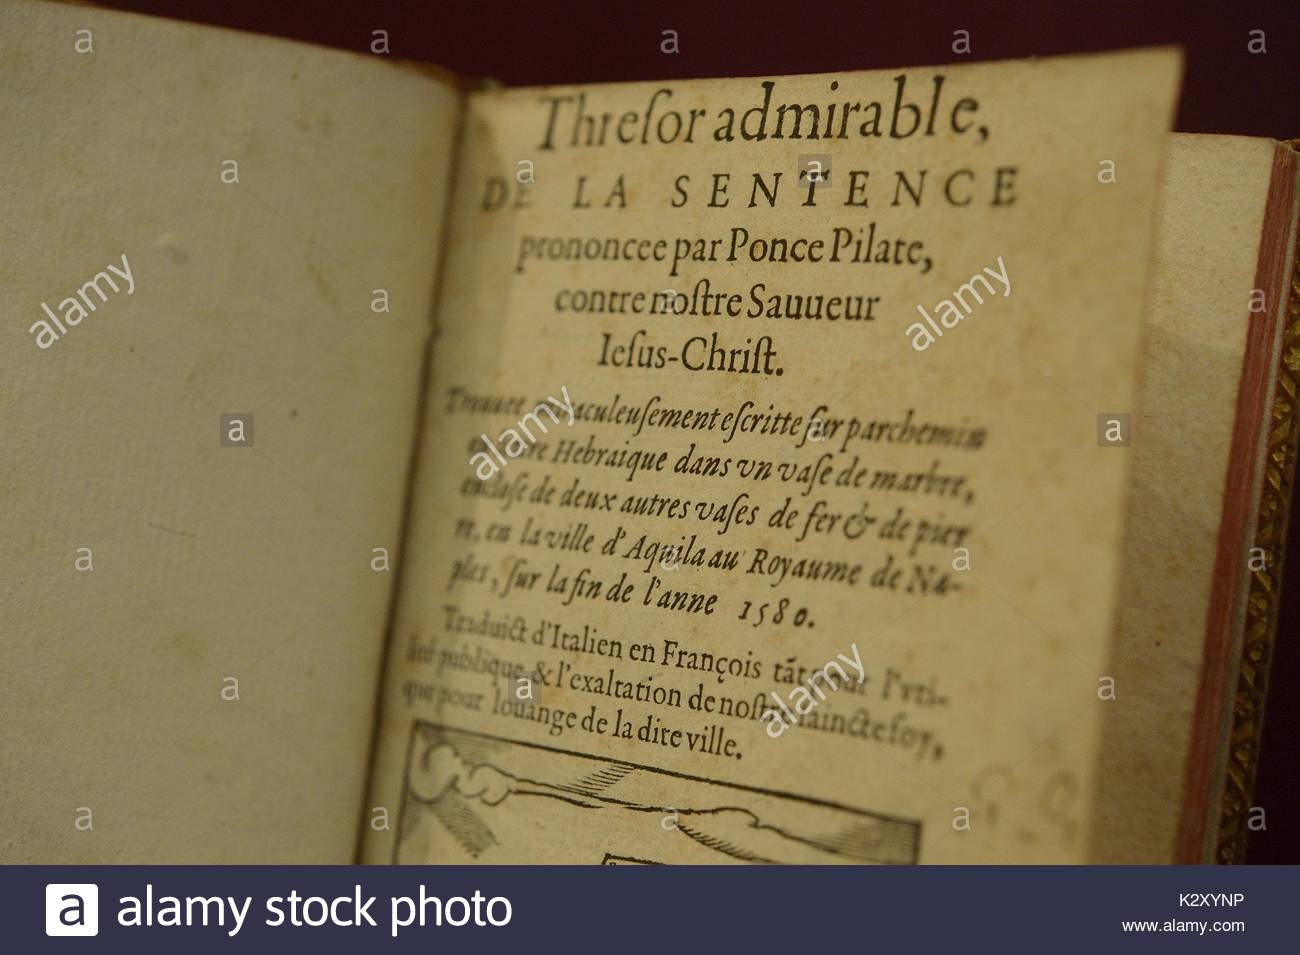 Up close image of page from an old text describing the death sentence of Jesus Christ by Pontius Pilate, dated 1580, part of an exhibition by the Johns Hopkins University and the Maryland College Institute of Art discussing rare books and conservation methods, Baltimore, Maryland, 2015. - Stock Image